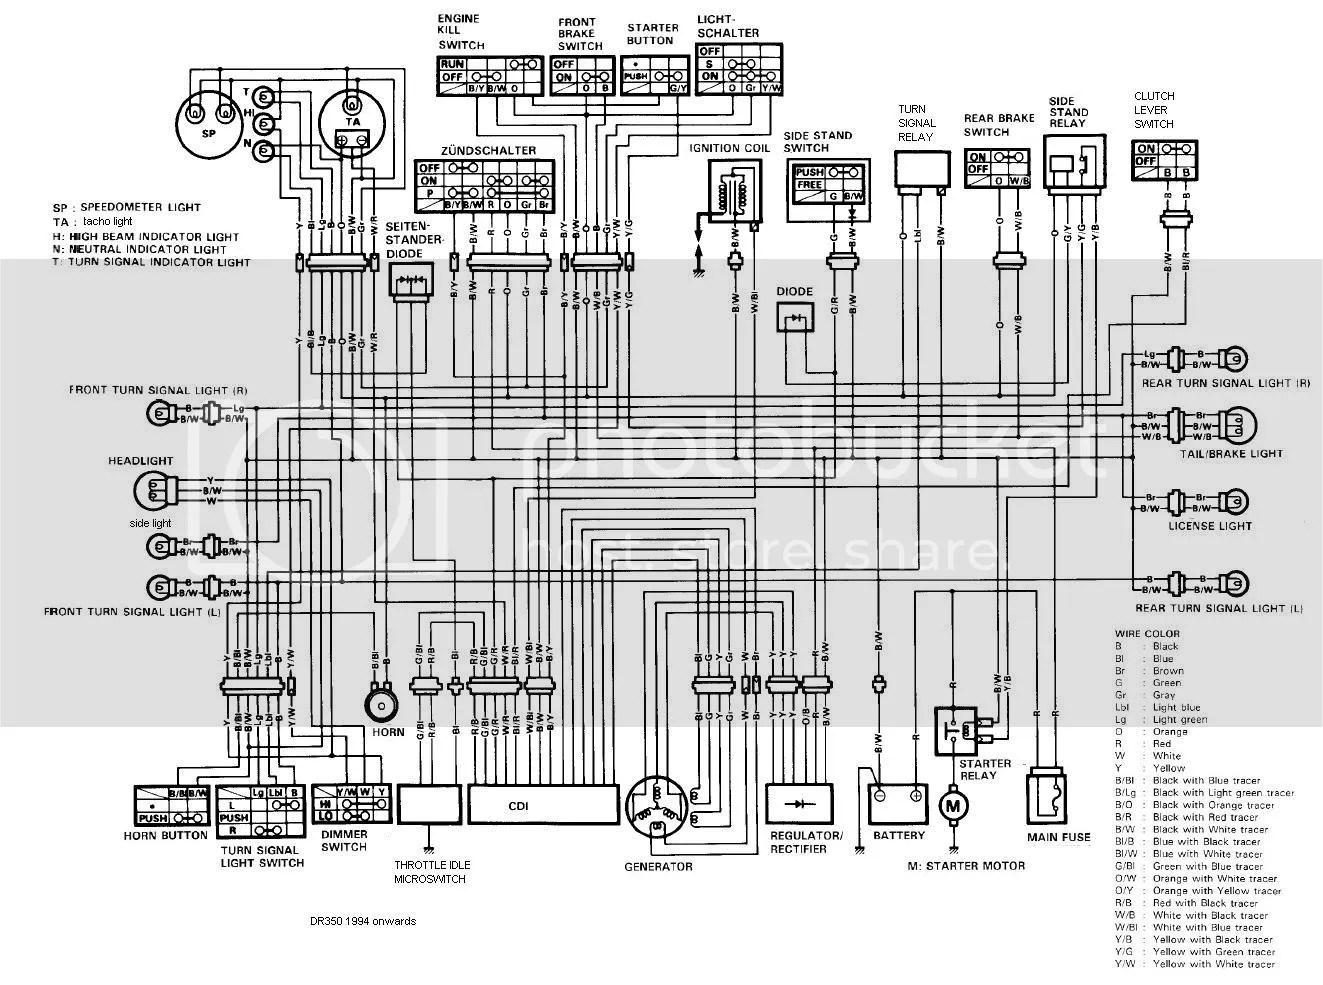 hight resolution of vl800 wiring diagram wiring diagrams simple wiring schematics vl800 wiring schematic